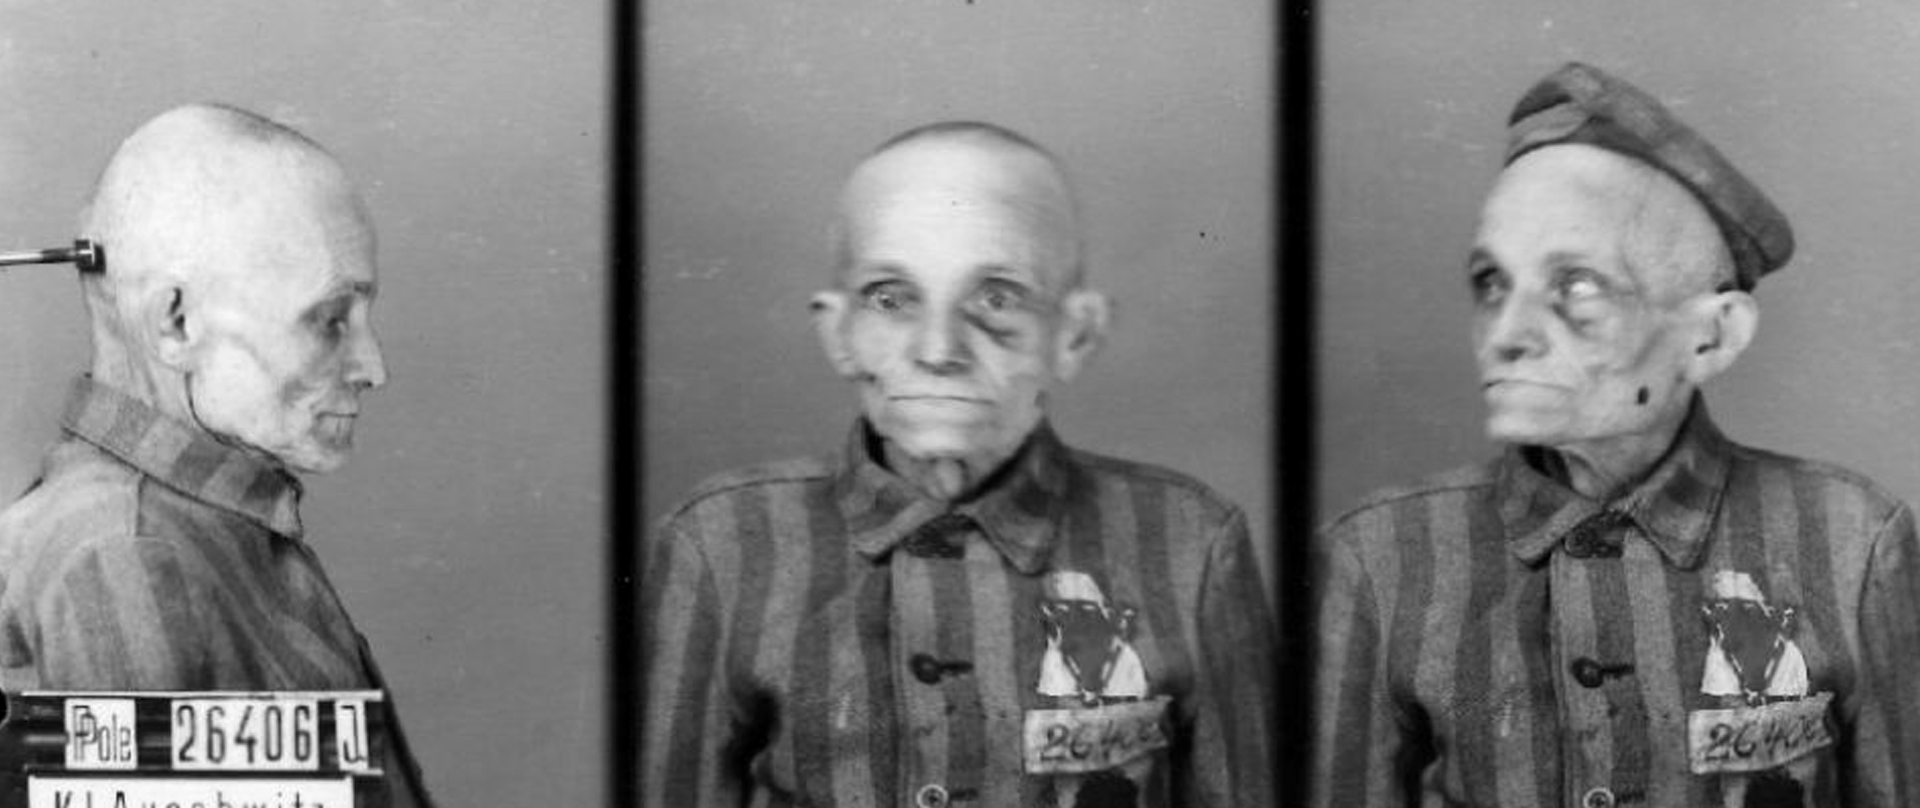 Registration Pictures and Marking System - Faces of Auschwitz